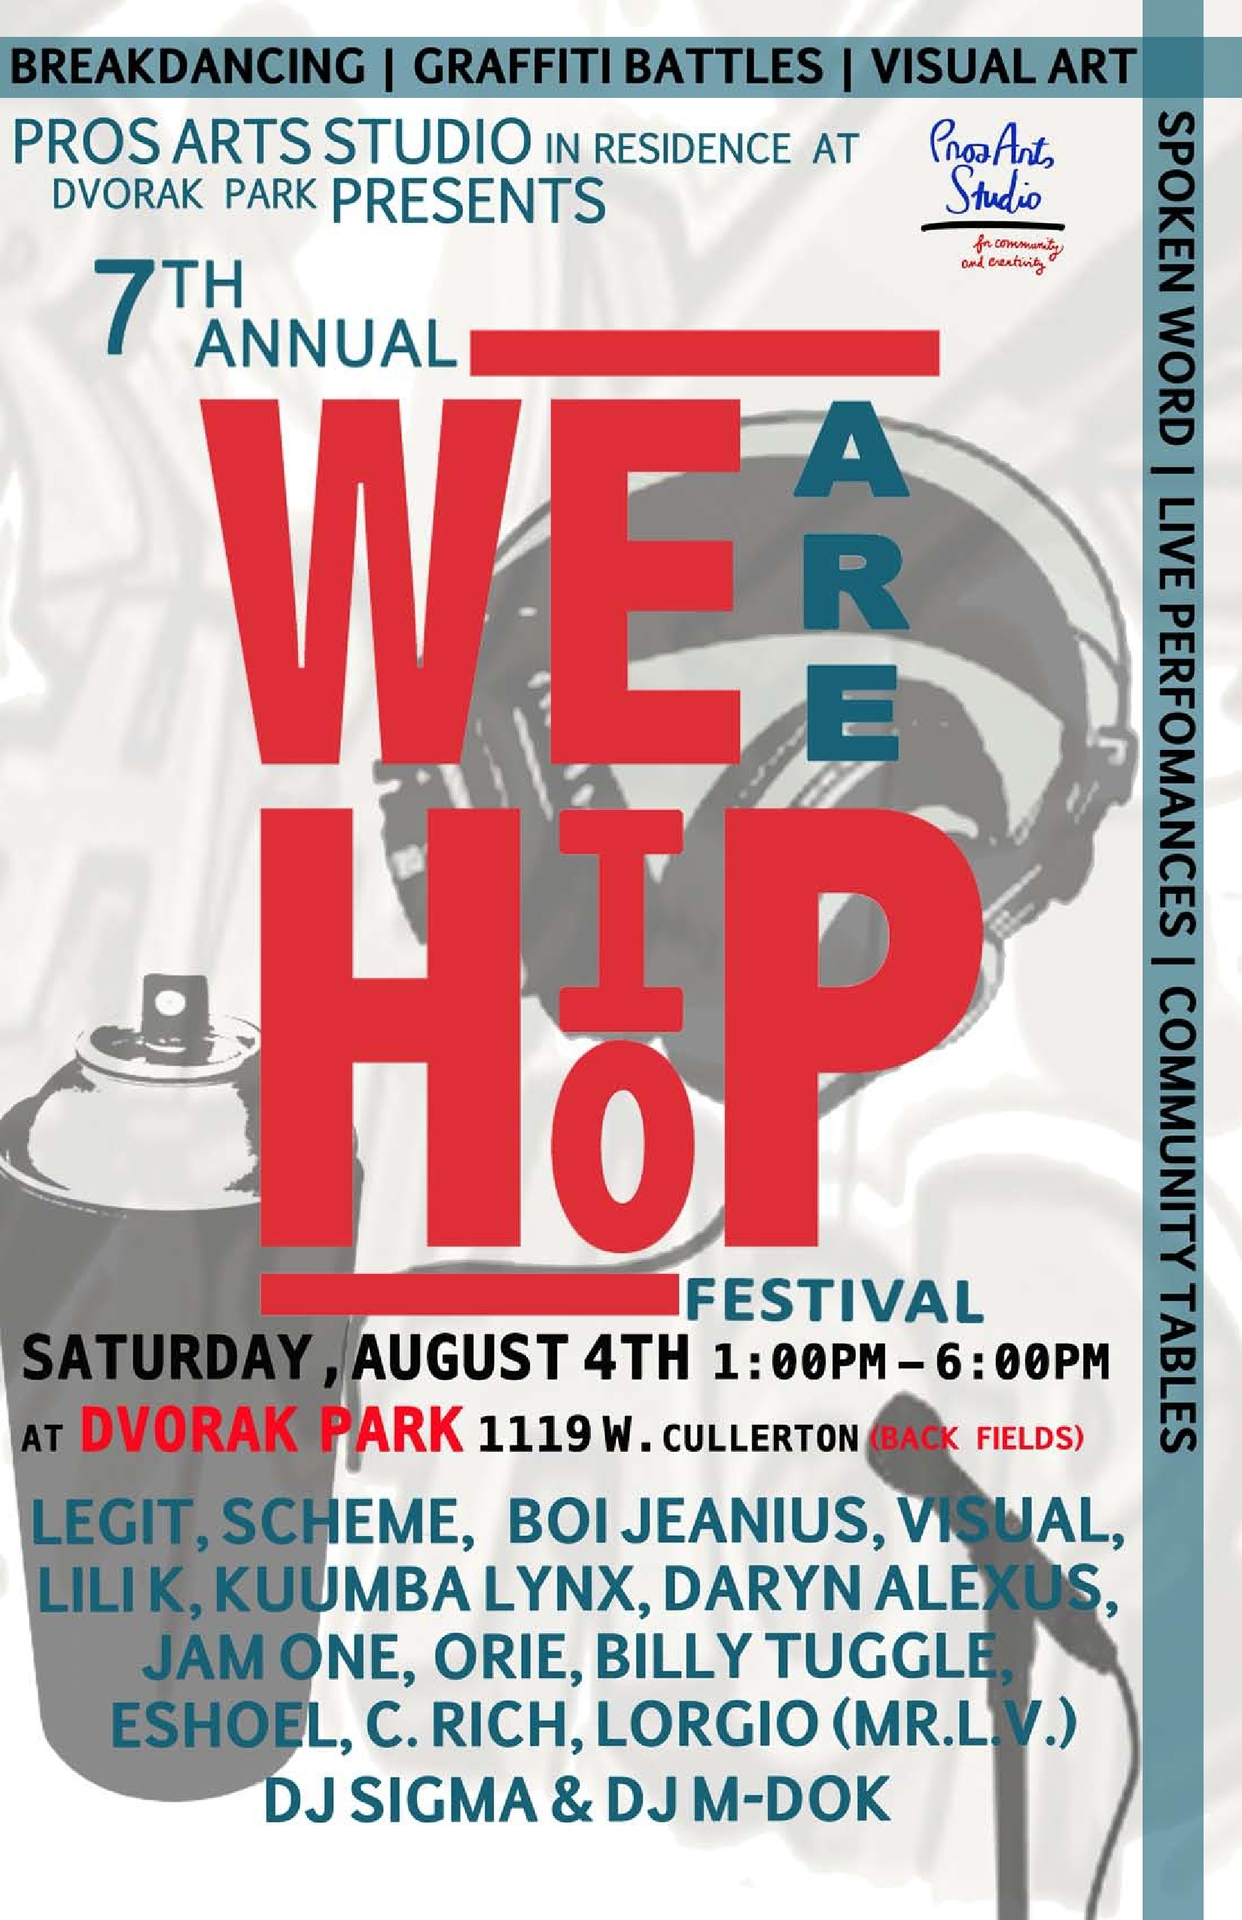 Our flyer is finally done! We hope to see you there!   Like us on Facebook:   https://www.facebook.com/wearehiphopfestival     Follow us on Twitter:  twitter.com/werhiphopfest